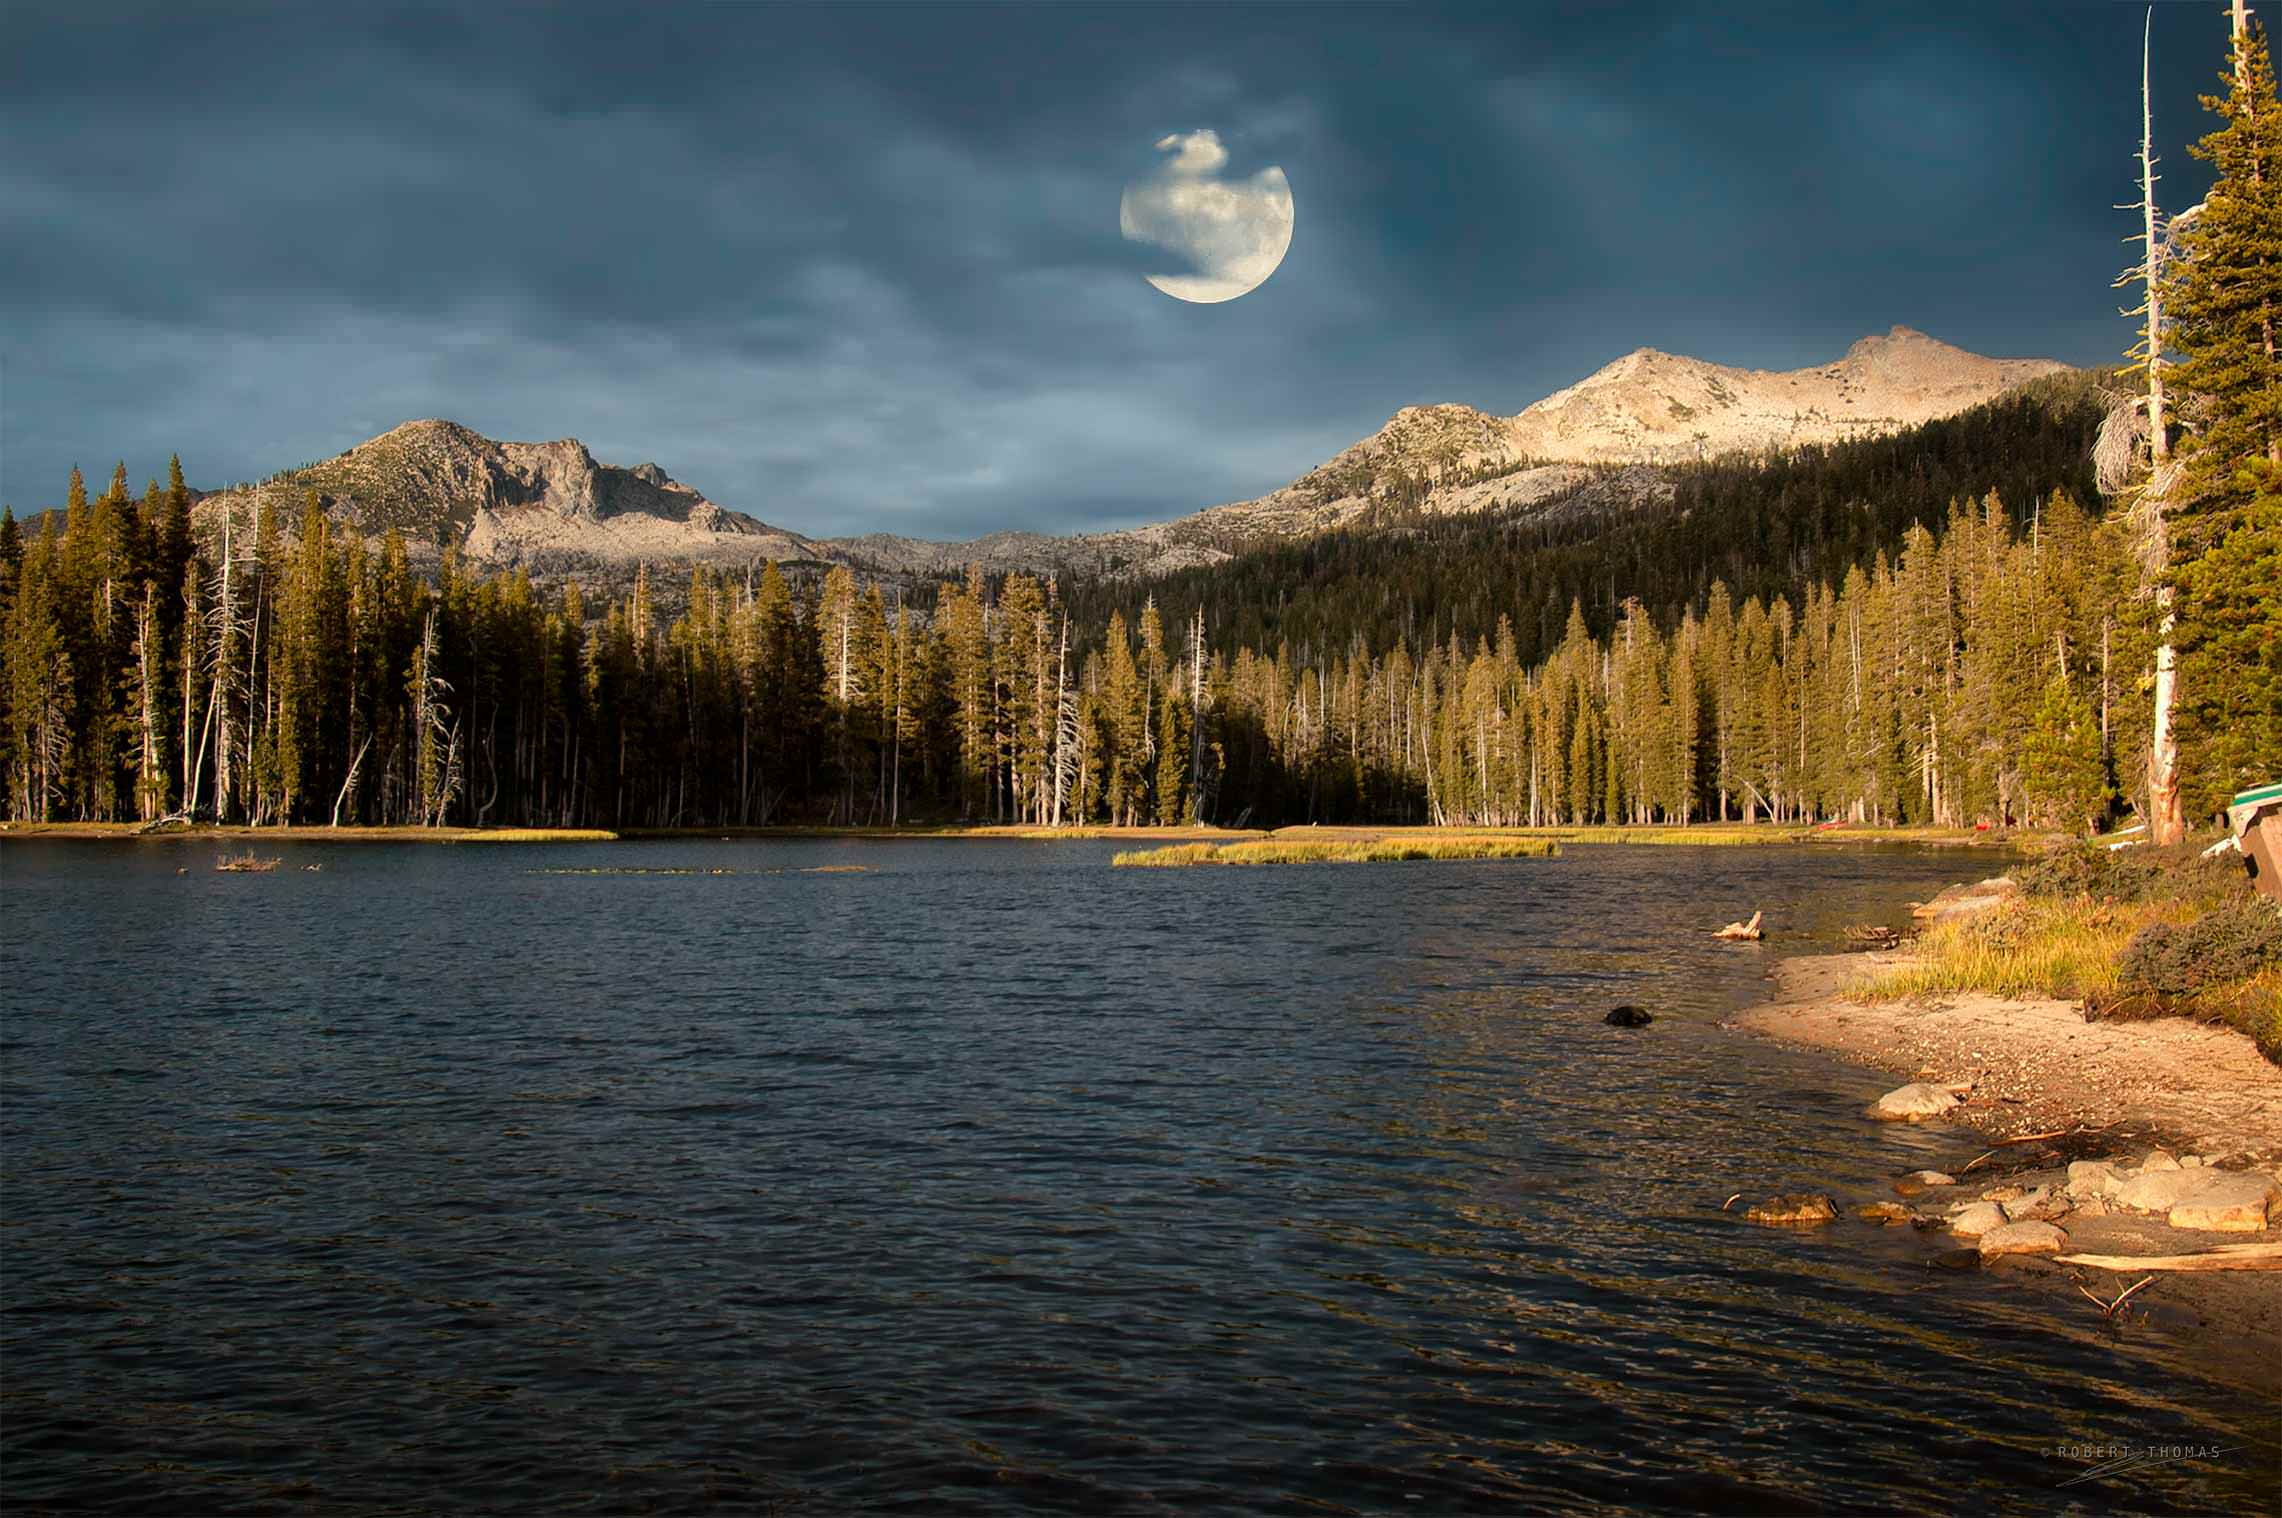 Use Luminance Blending To Blend An Object Into Your Image